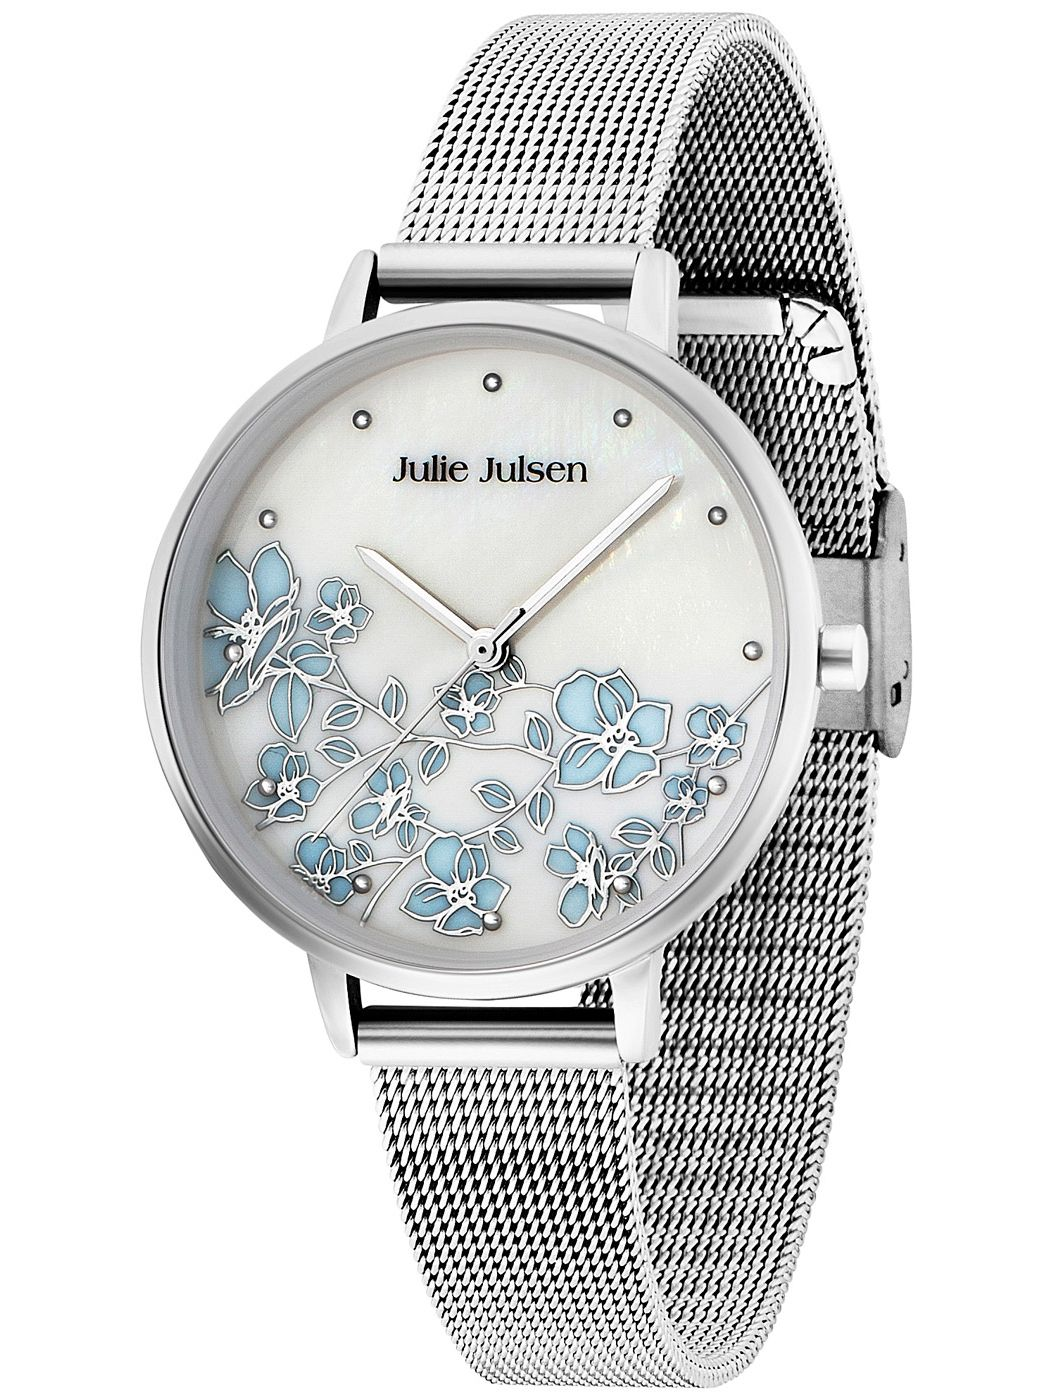 Julie Ladies' Watch Blossom Julsen Jjw80sme Ow8n0Pk